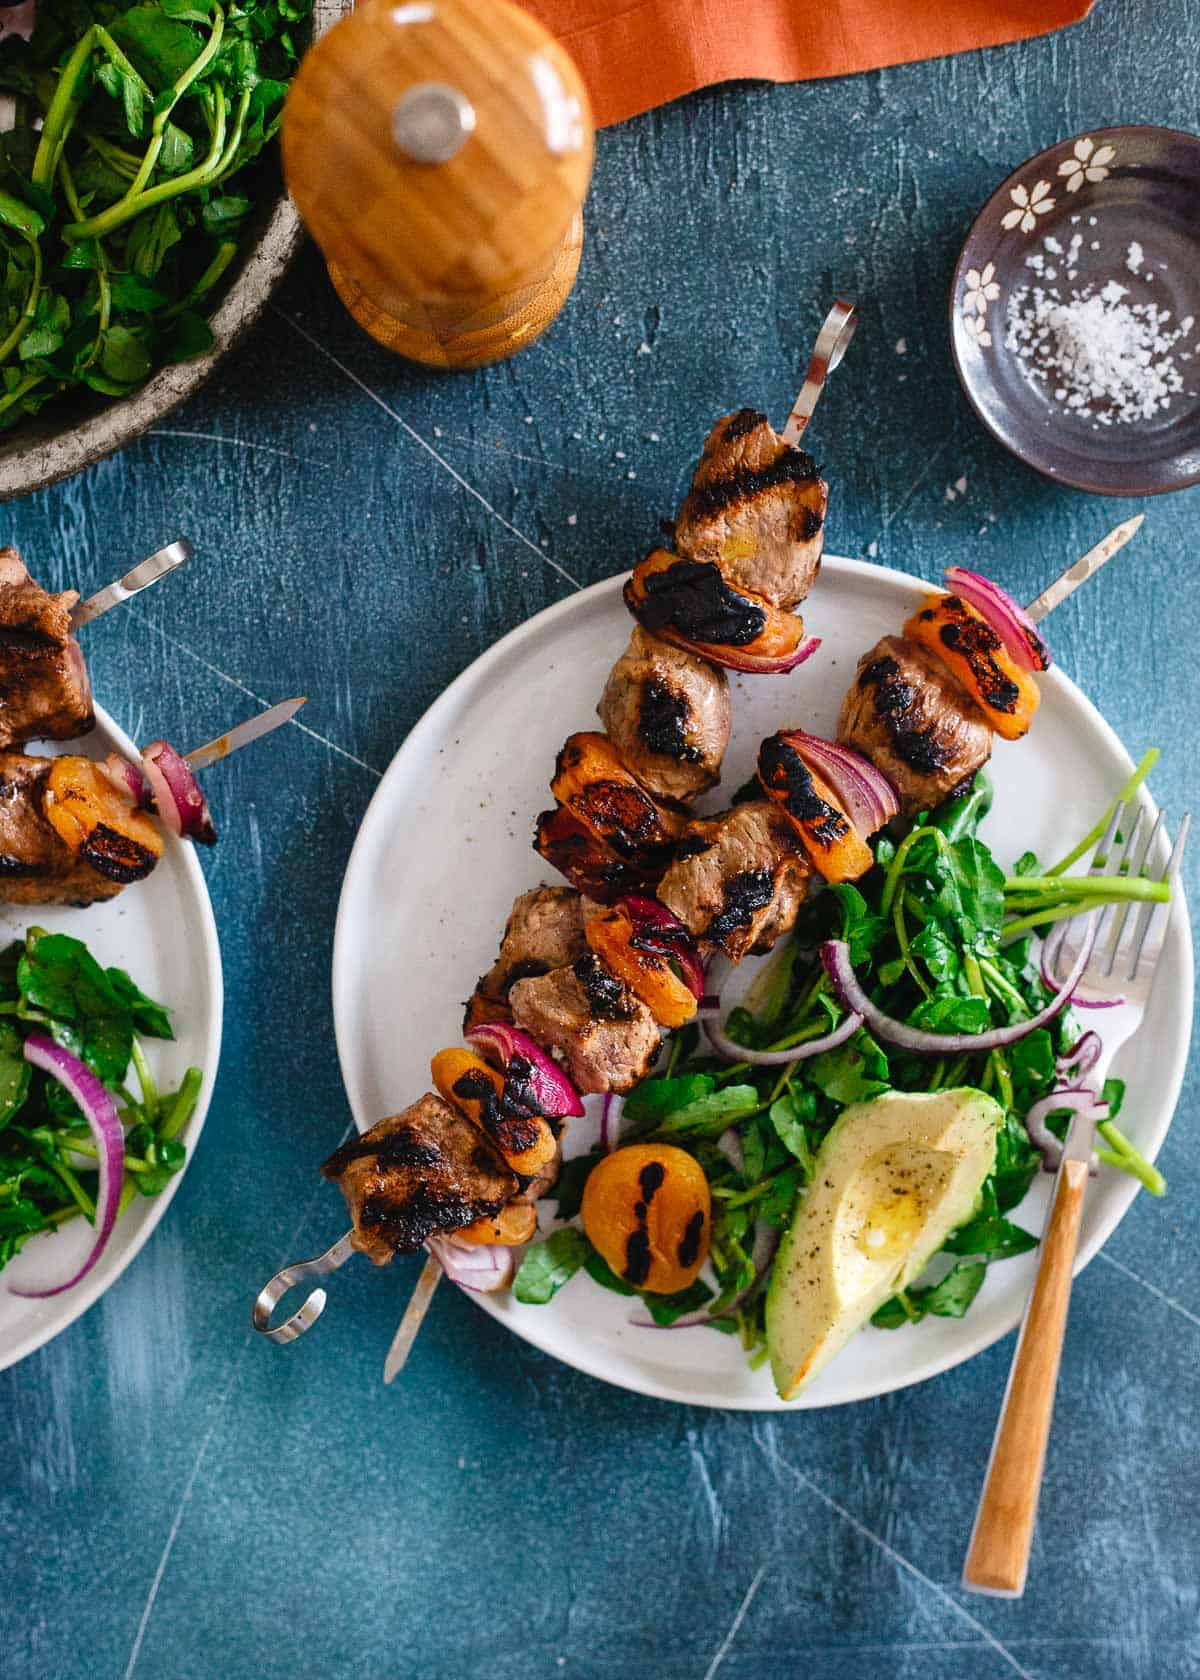 These smoky grilled apricot lamb kebabs are a great way to enjoy American spring lamb. Special enough to serve for Easter, easy enough to grill up on a weeknight!